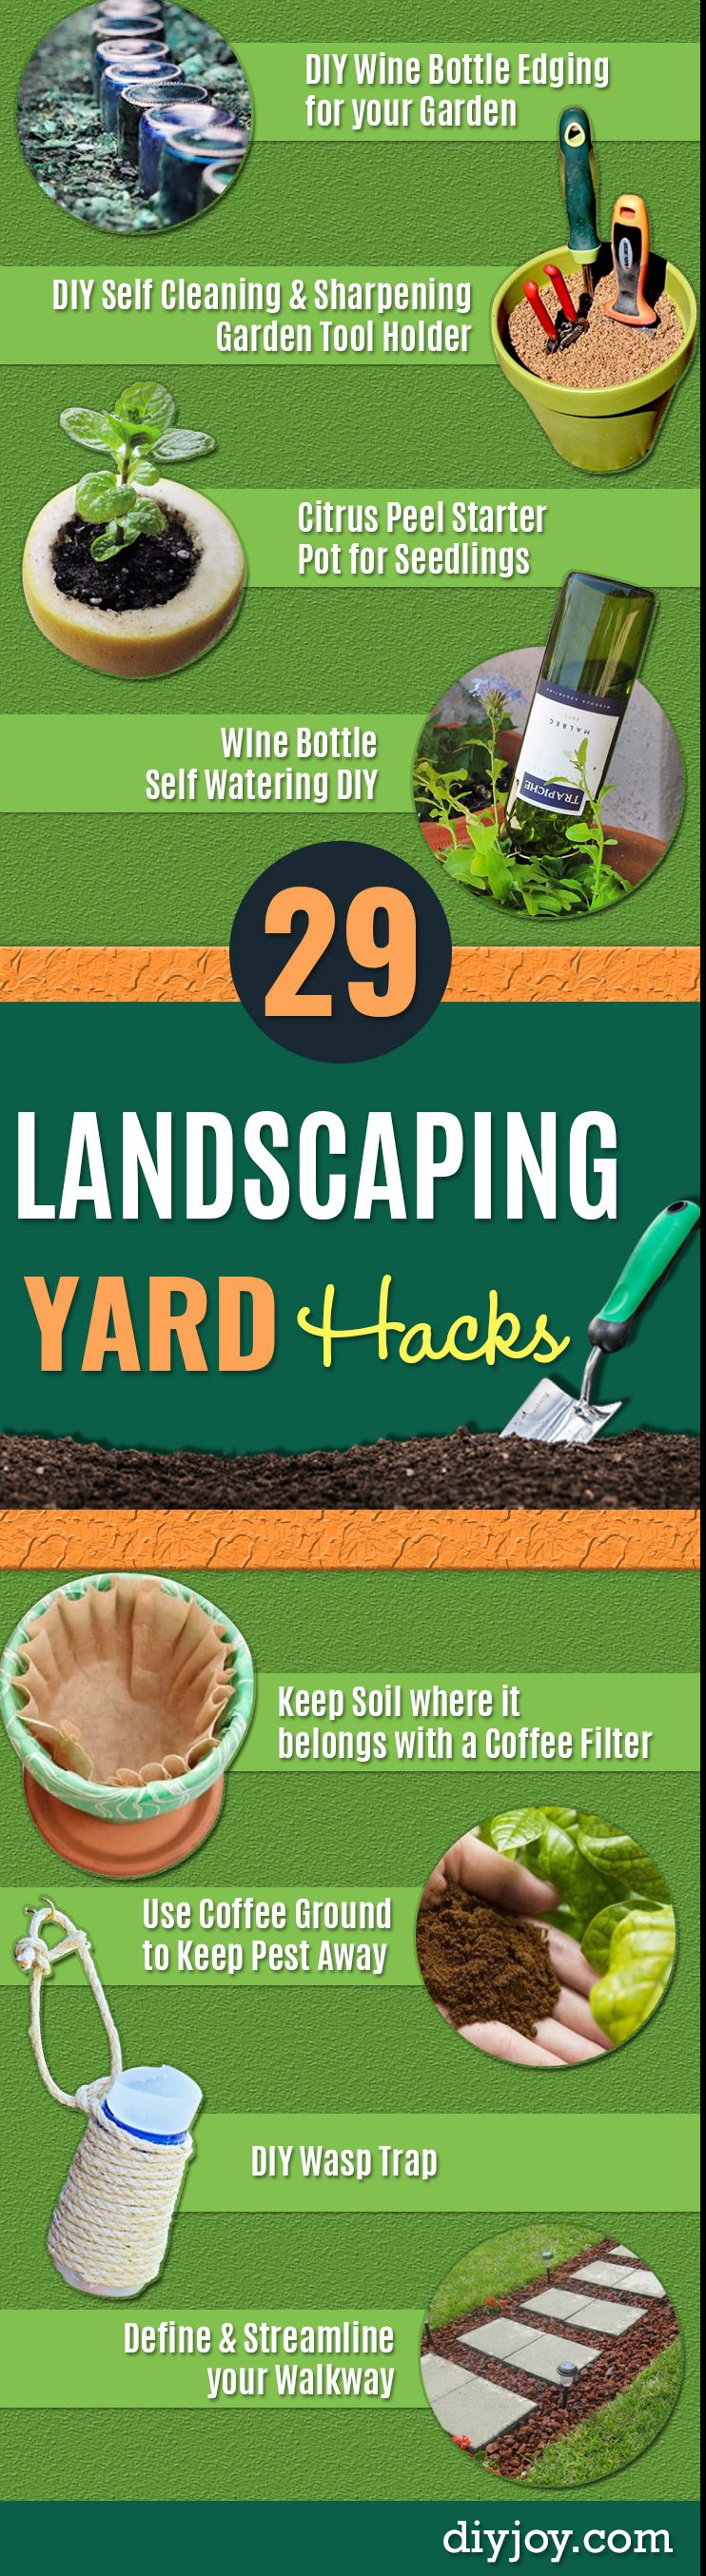 DIY Landscaping Hacks - Easy Ways to Make Your Yard and Home Look Awesome in Fall, Winter, Spring and Fall. Backyard Projects for Beginning Gardeners and Lawns - Tutorials and Step by Step Instructions